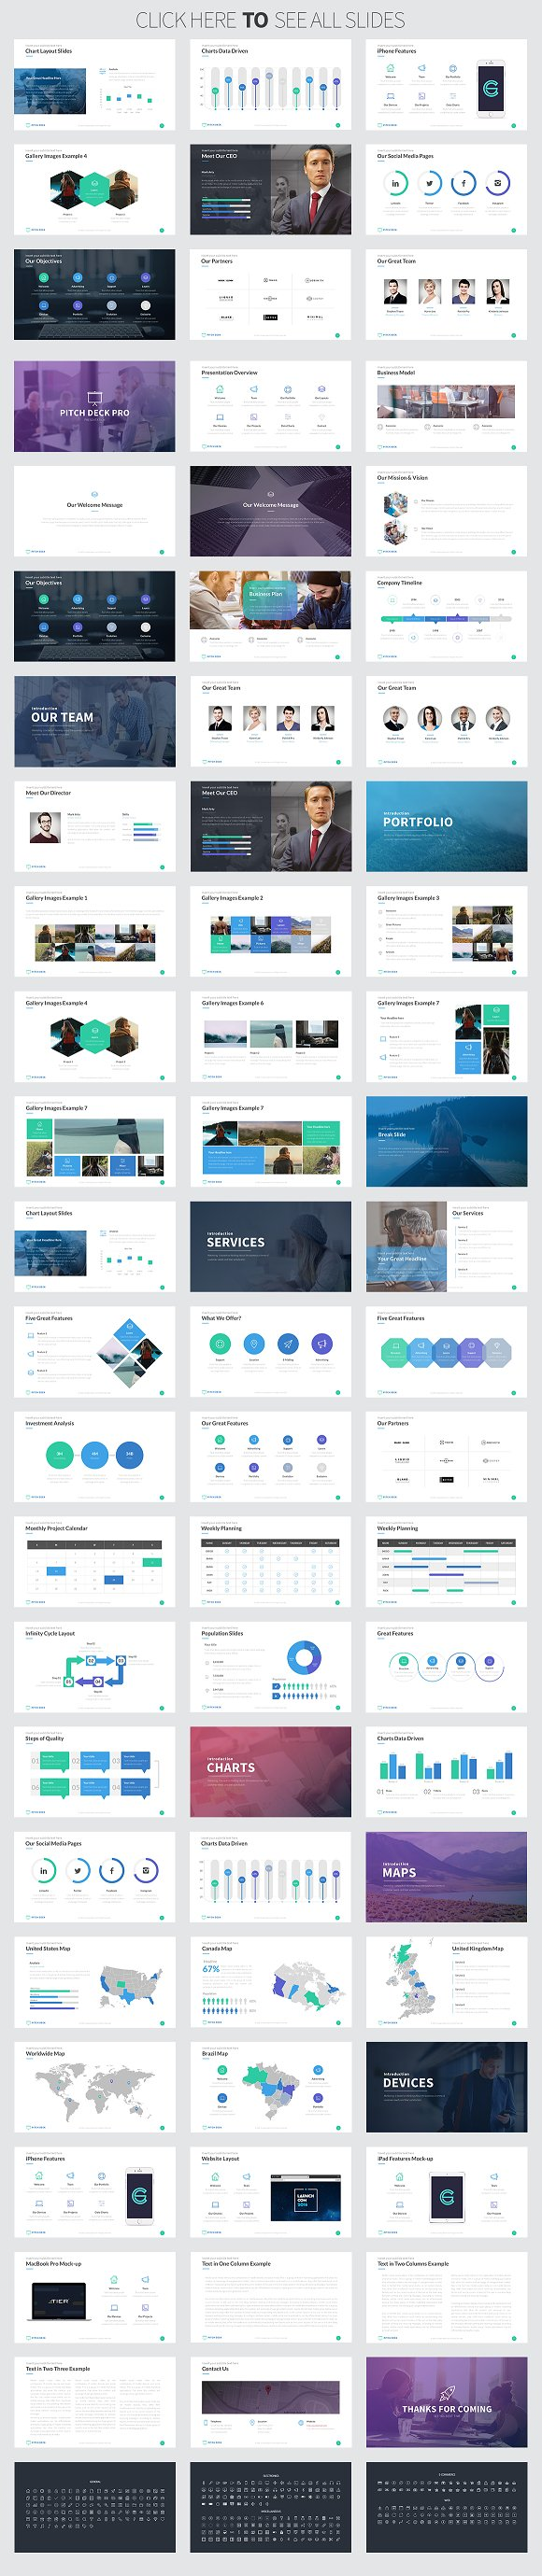 Pitch deck pro keynote template presentation templates pitch deck pro keynote template presentation templates creative market toneelgroepblik Images